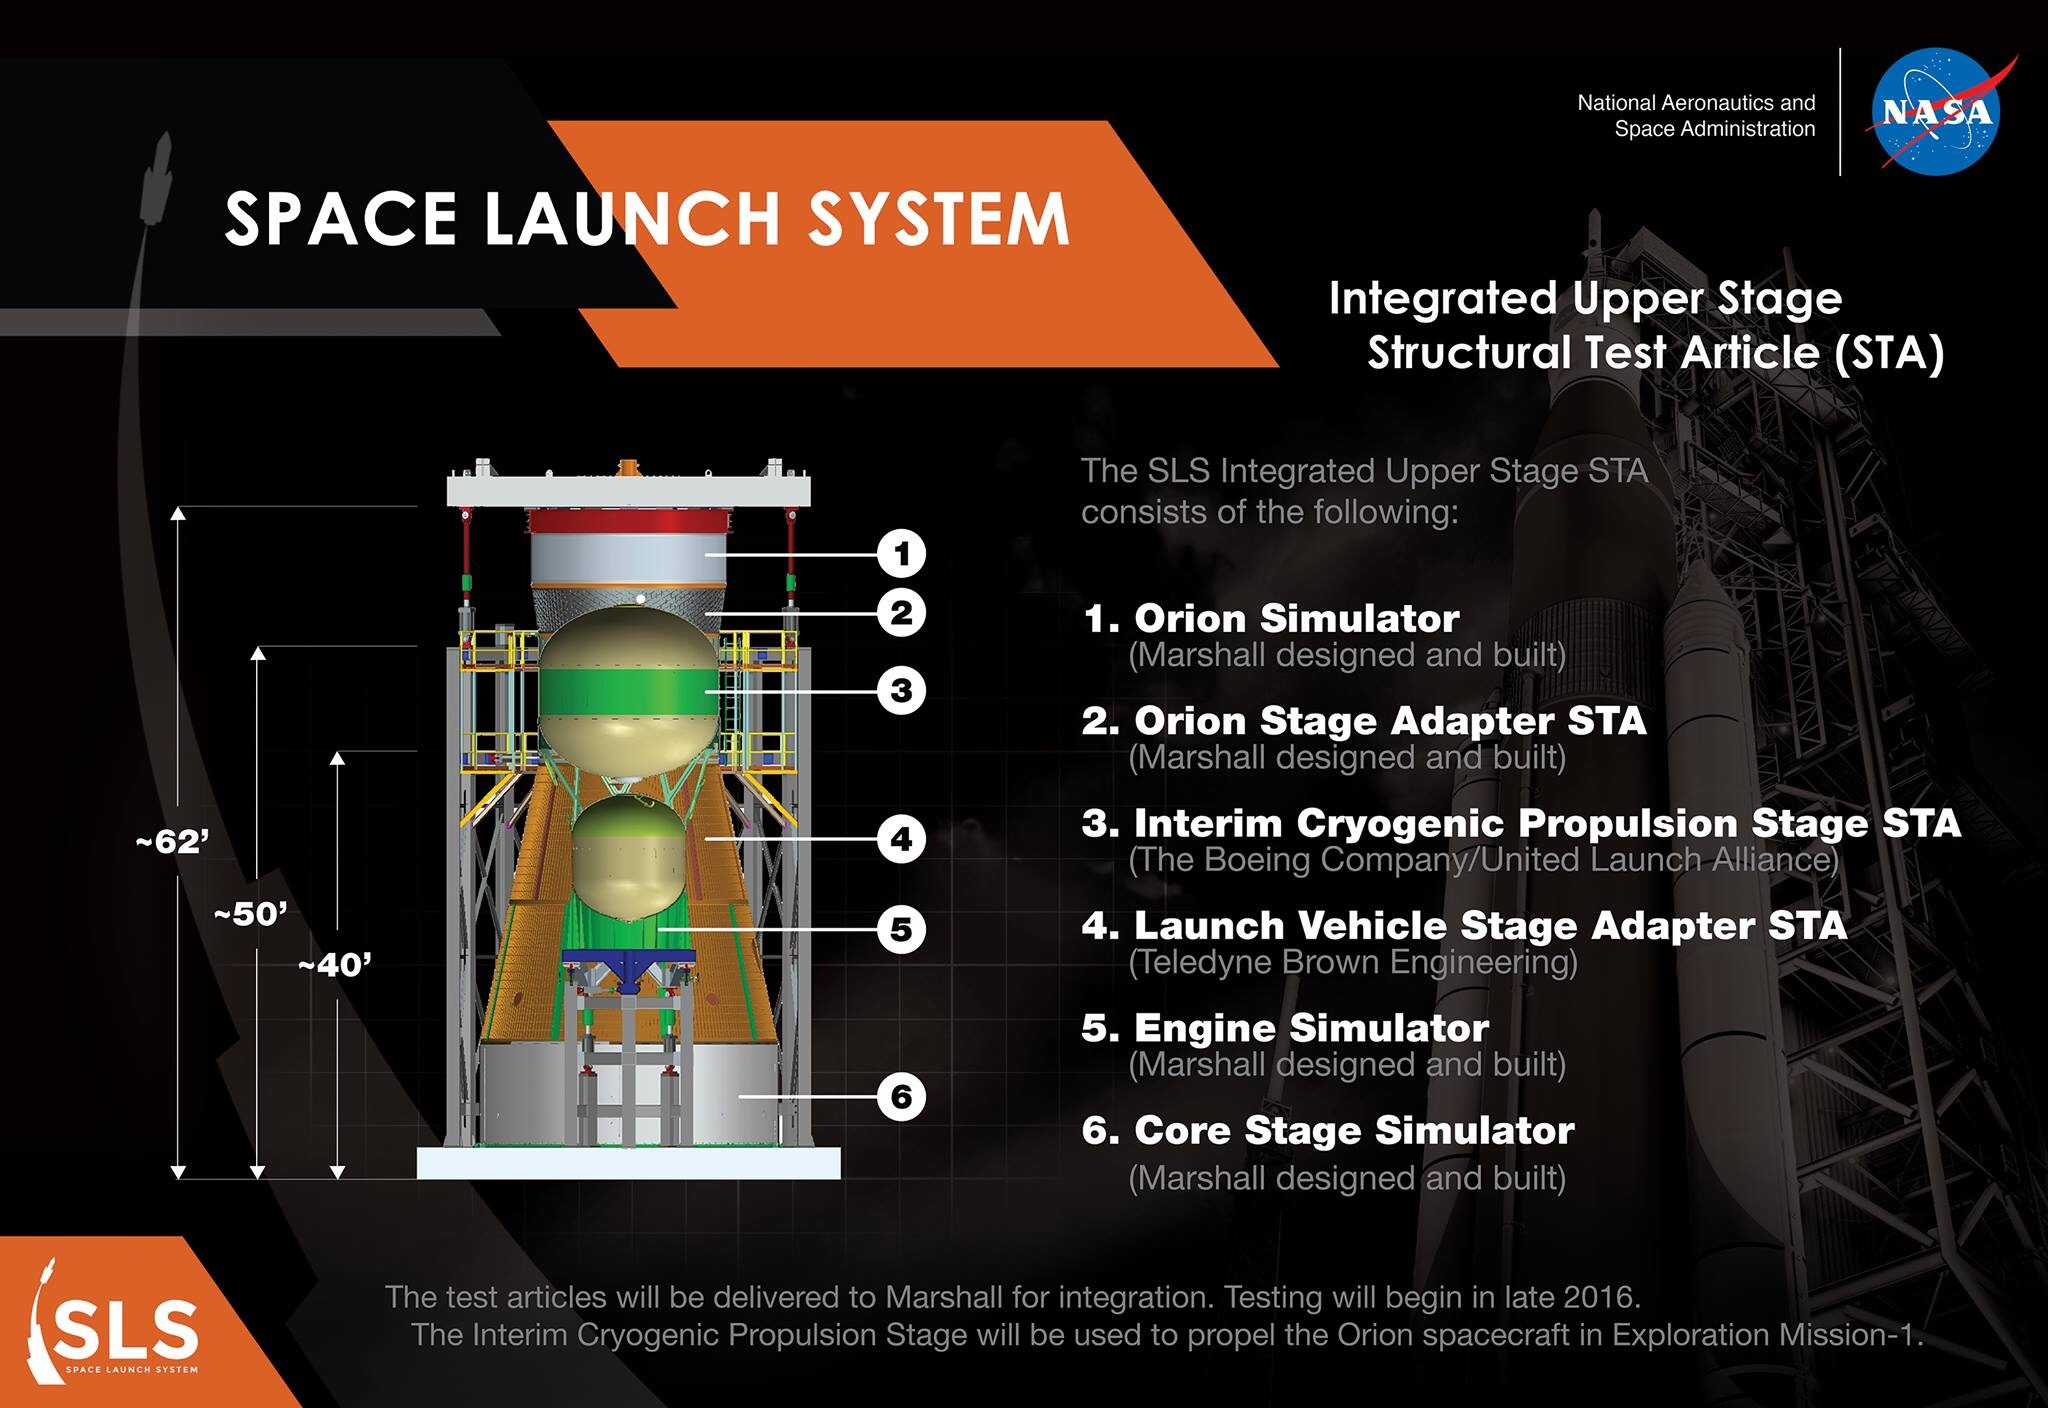 Integrated Upper Stage Structural Test Article Graphic. Photo Credit: NASA